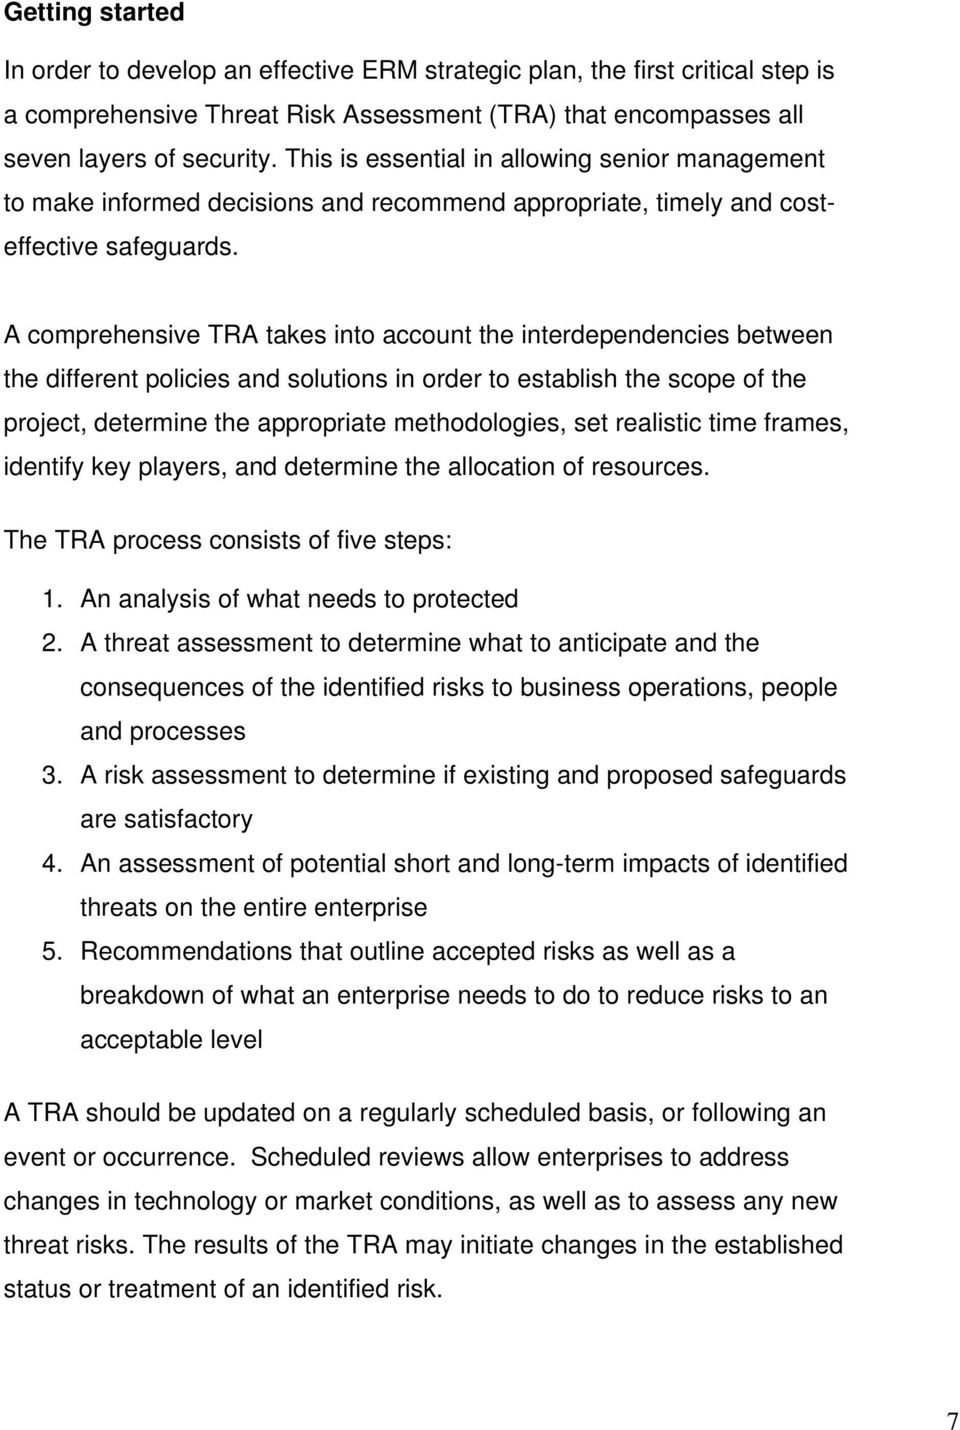 A comprehensive TRA takes into account the interdependencies between the different policies and solutions in order to establish the scope of the project, determine the appropriate methodologies, set